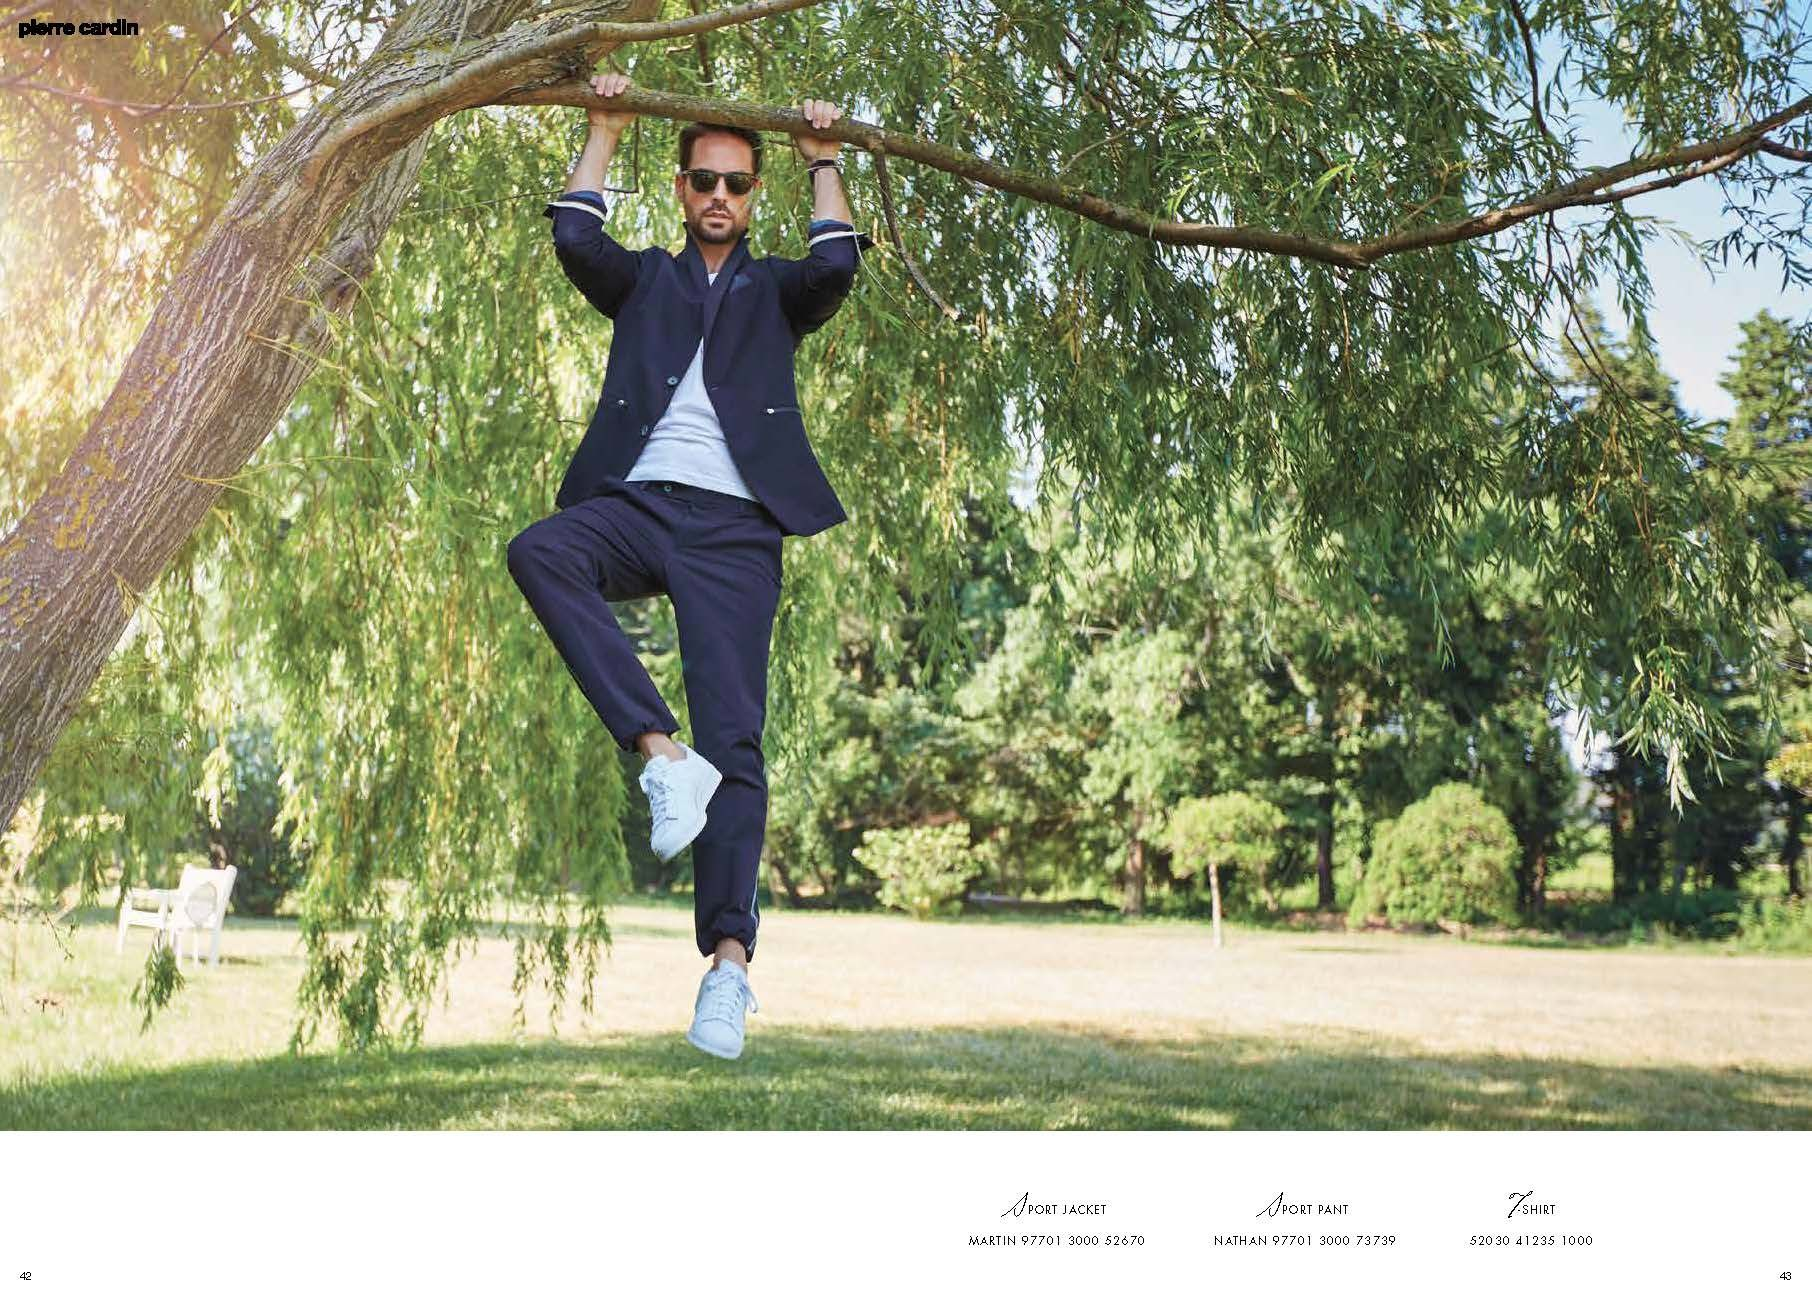 Pierre Cardin Lookbook s/s 16